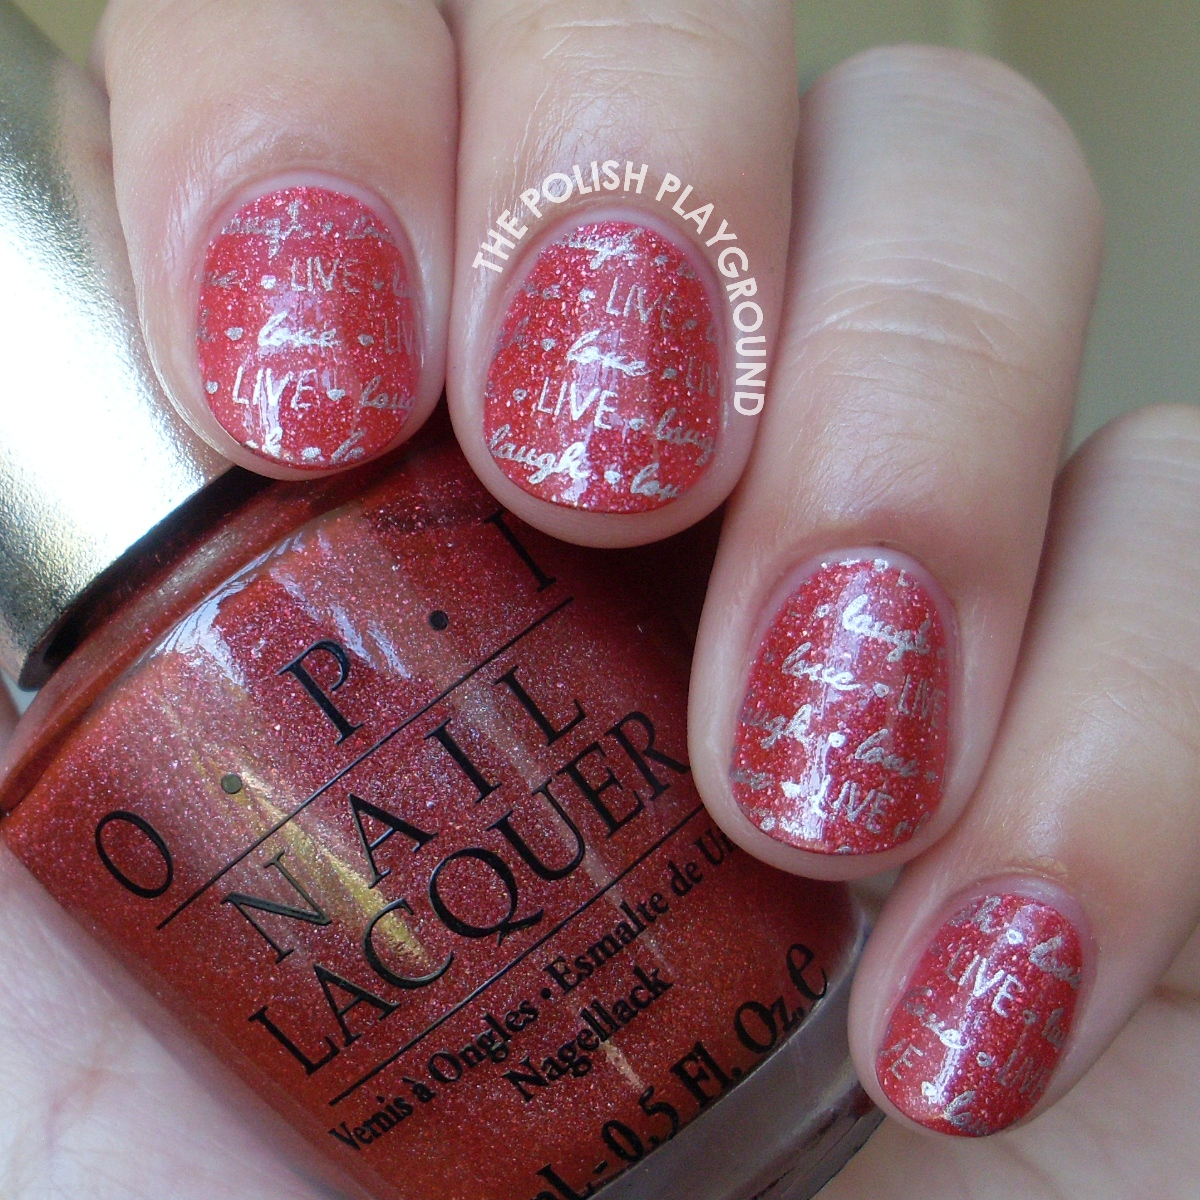 OPI DS Tapestry with Silver Live, Laugh, Love Stamping Nail Art